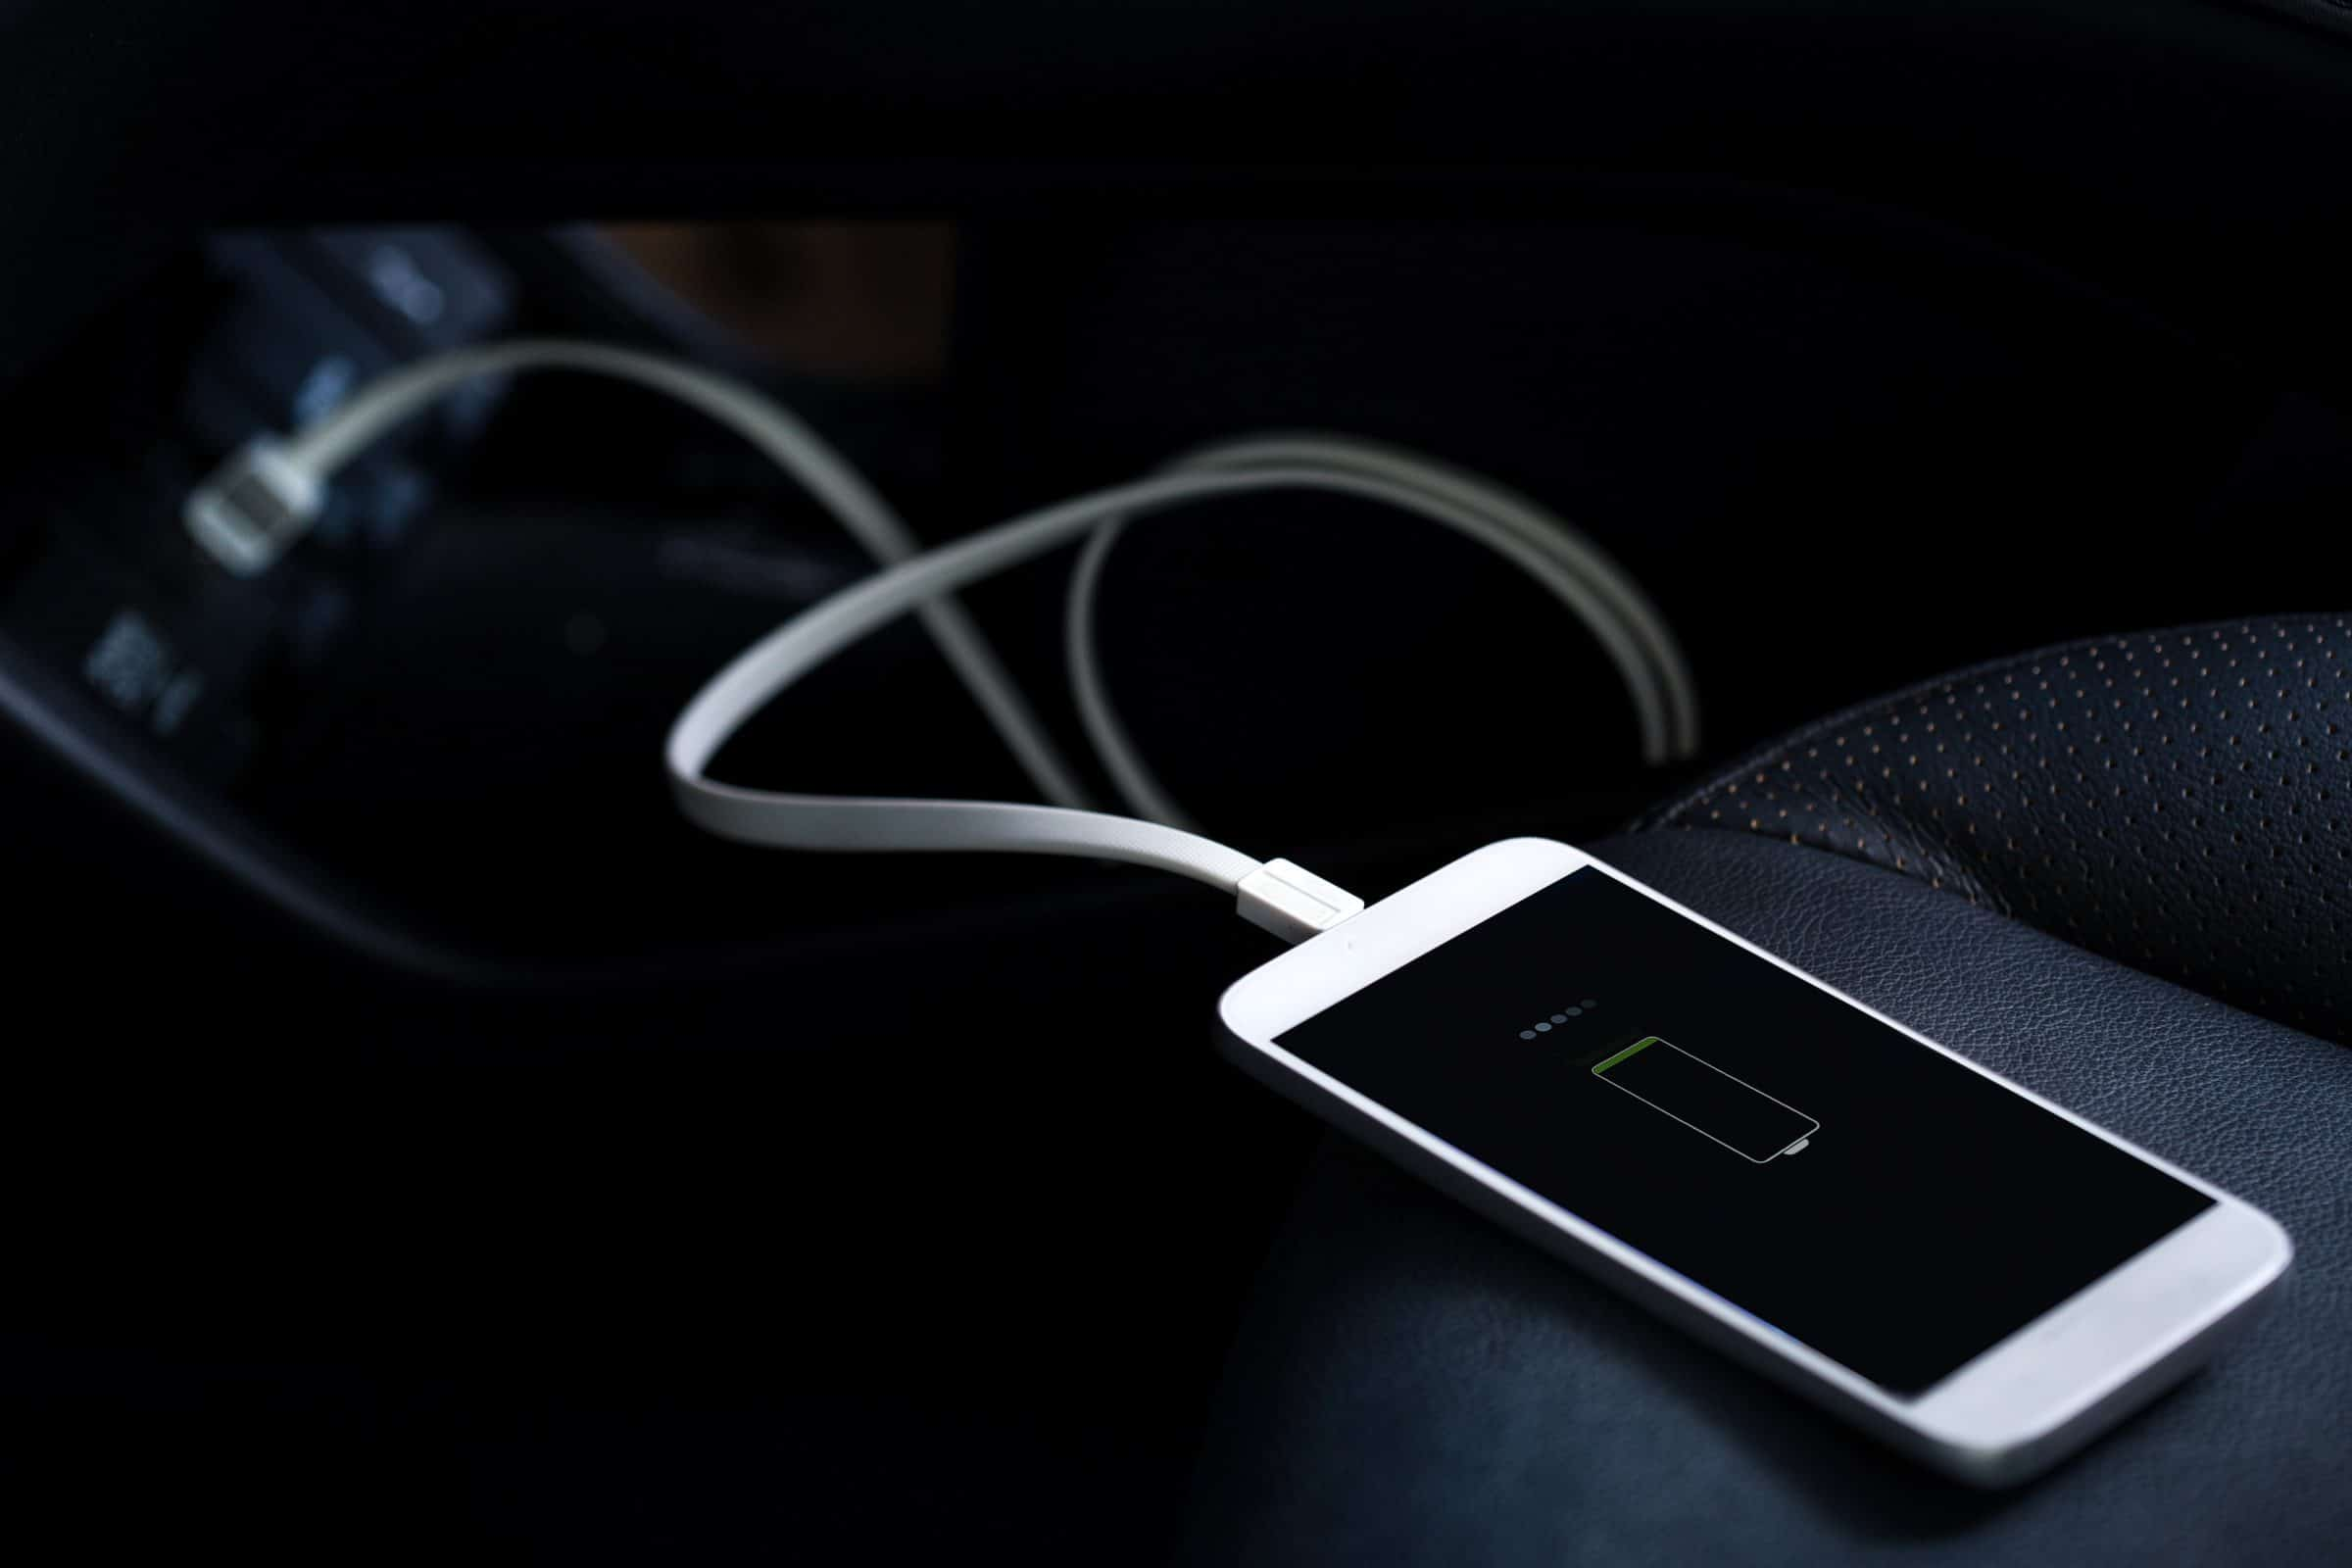 An iPhone on low batter is plugged into a car charger.